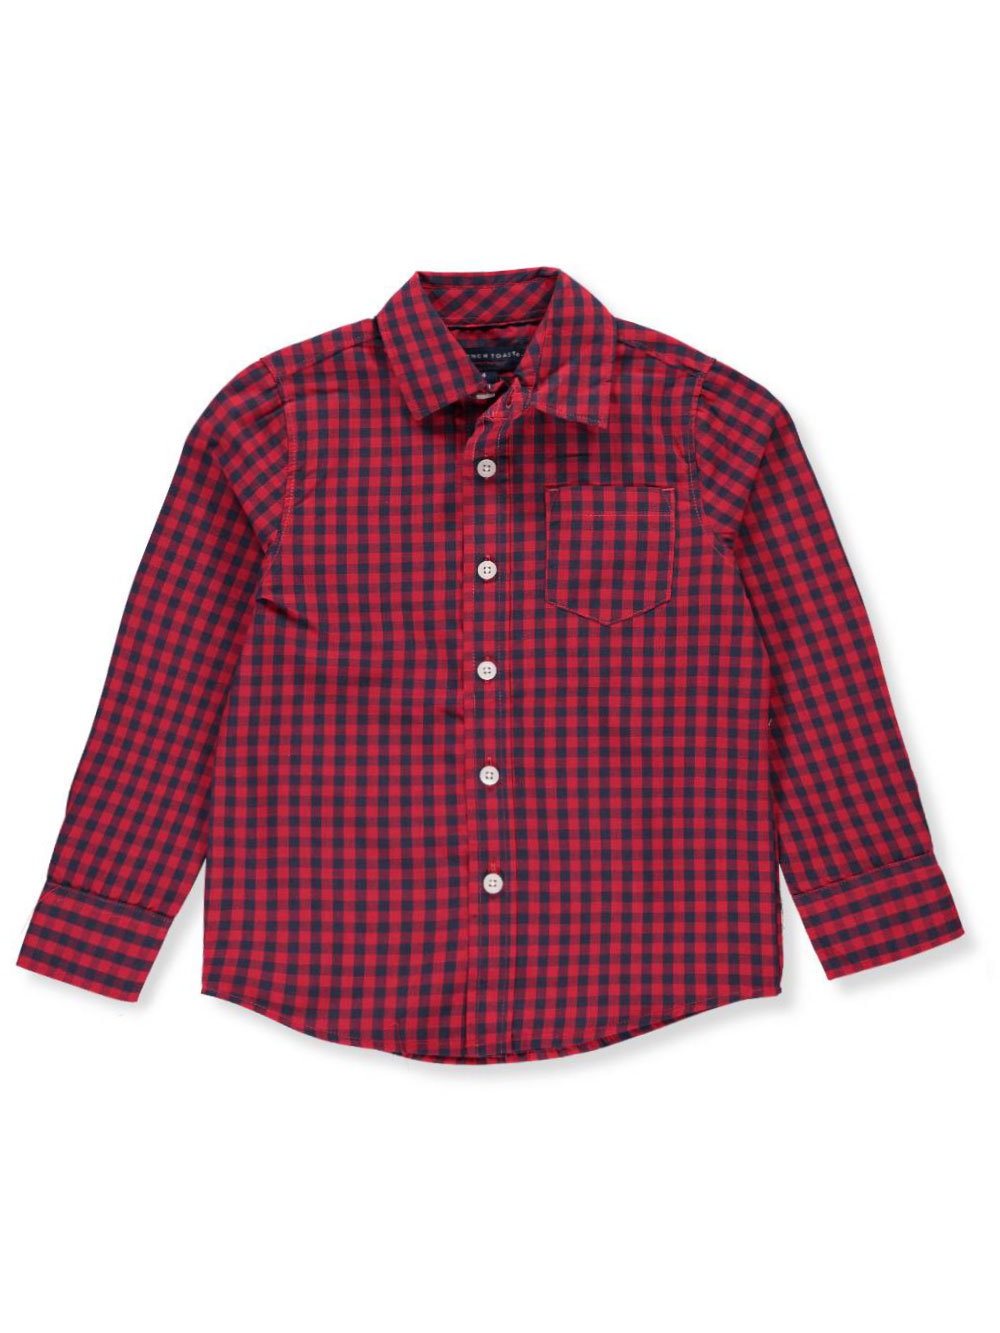 Size 16 Button-Downs for Boys